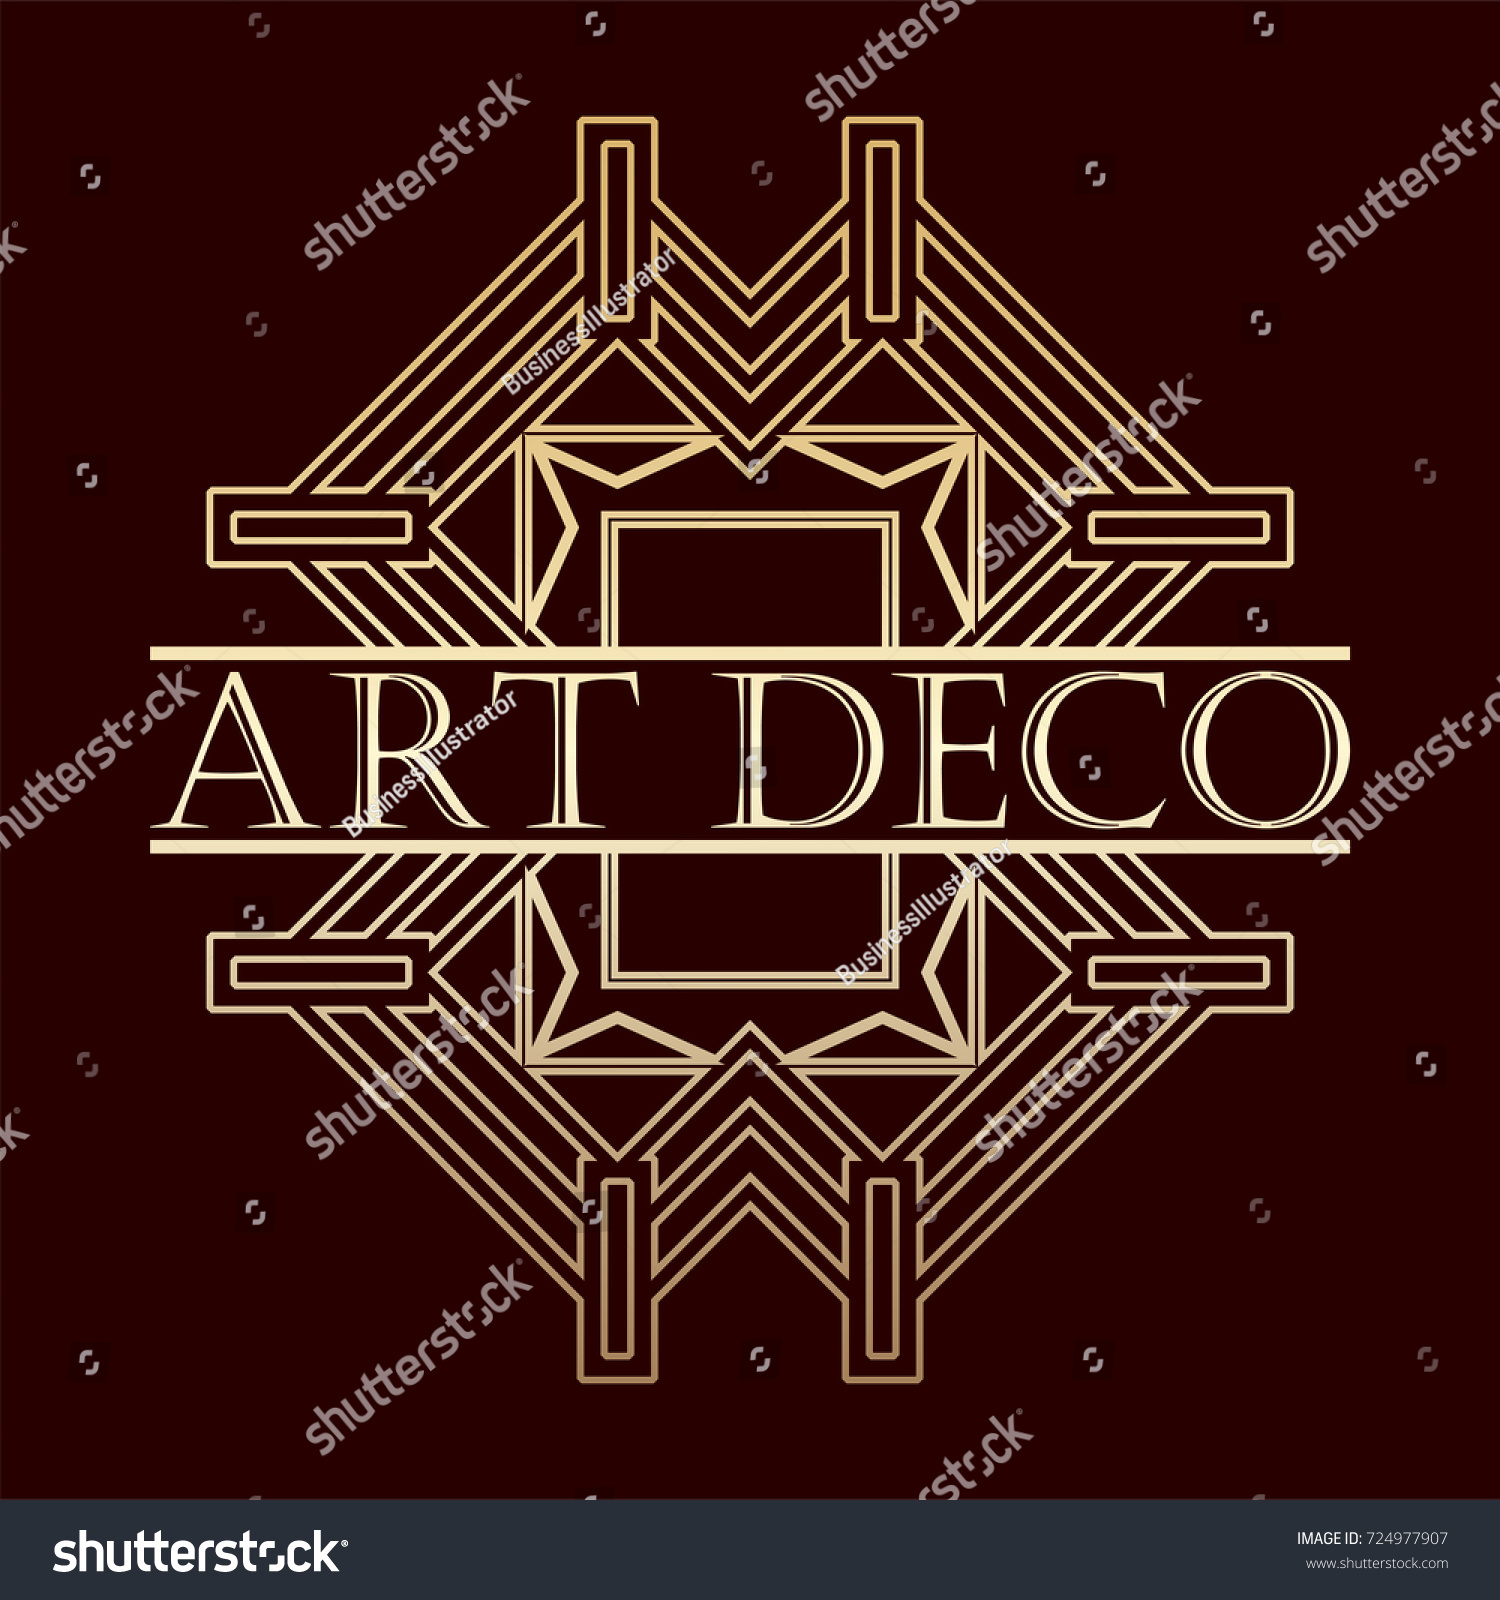 vintage retro art deco frame text stock vector 724977907 shutterstock. Black Bedroom Furniture Sets. Home Design Ideas